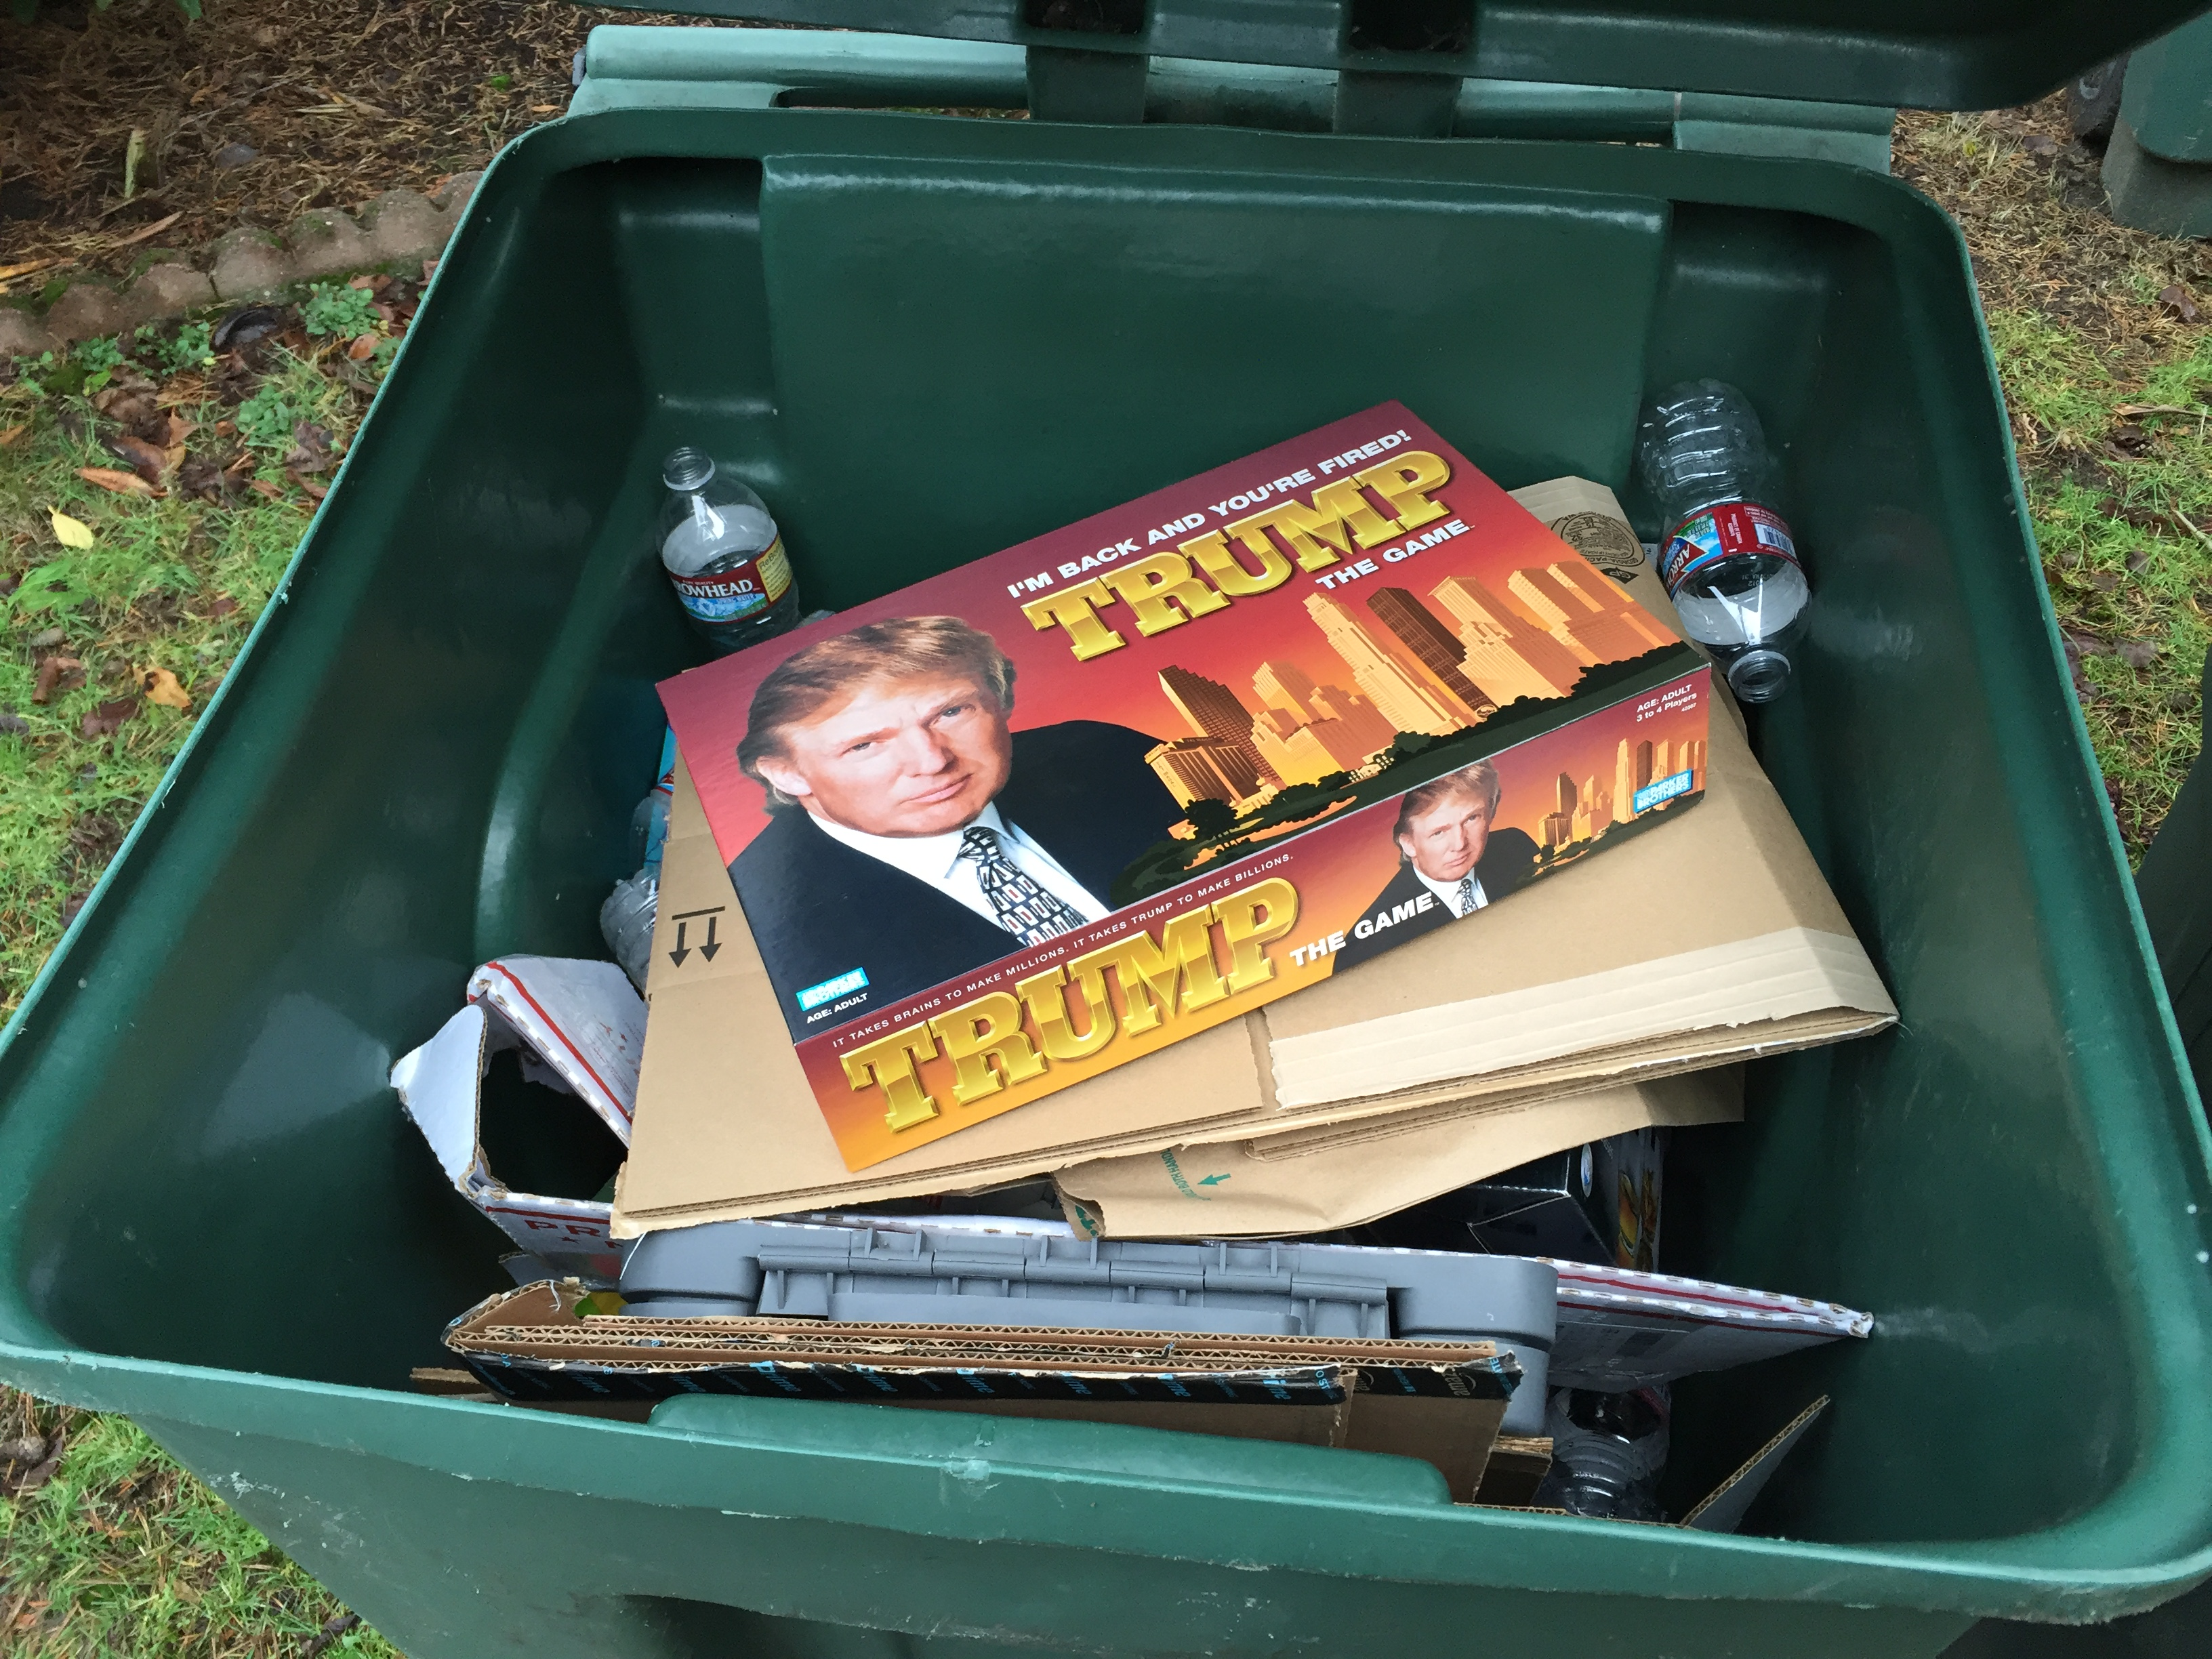 Trump in the Recycle Container